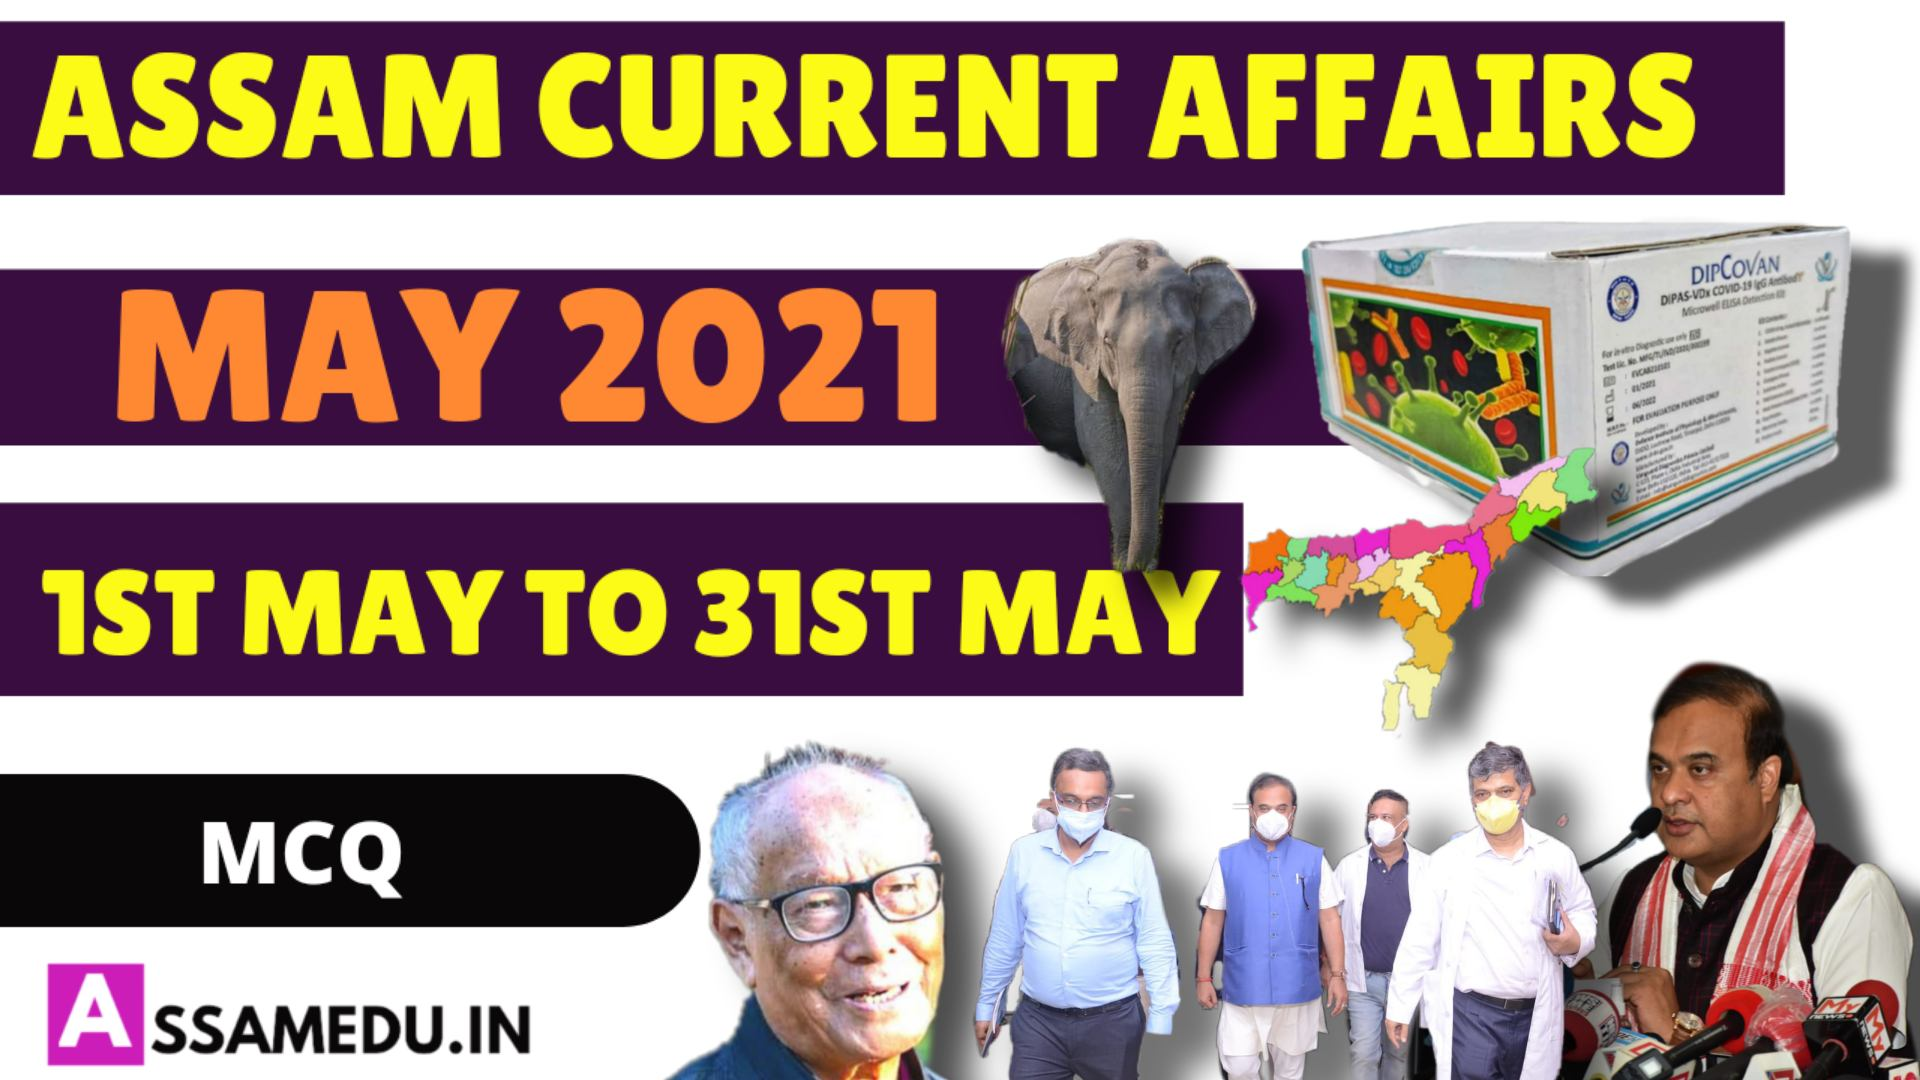 Assam Current affairs may 2021